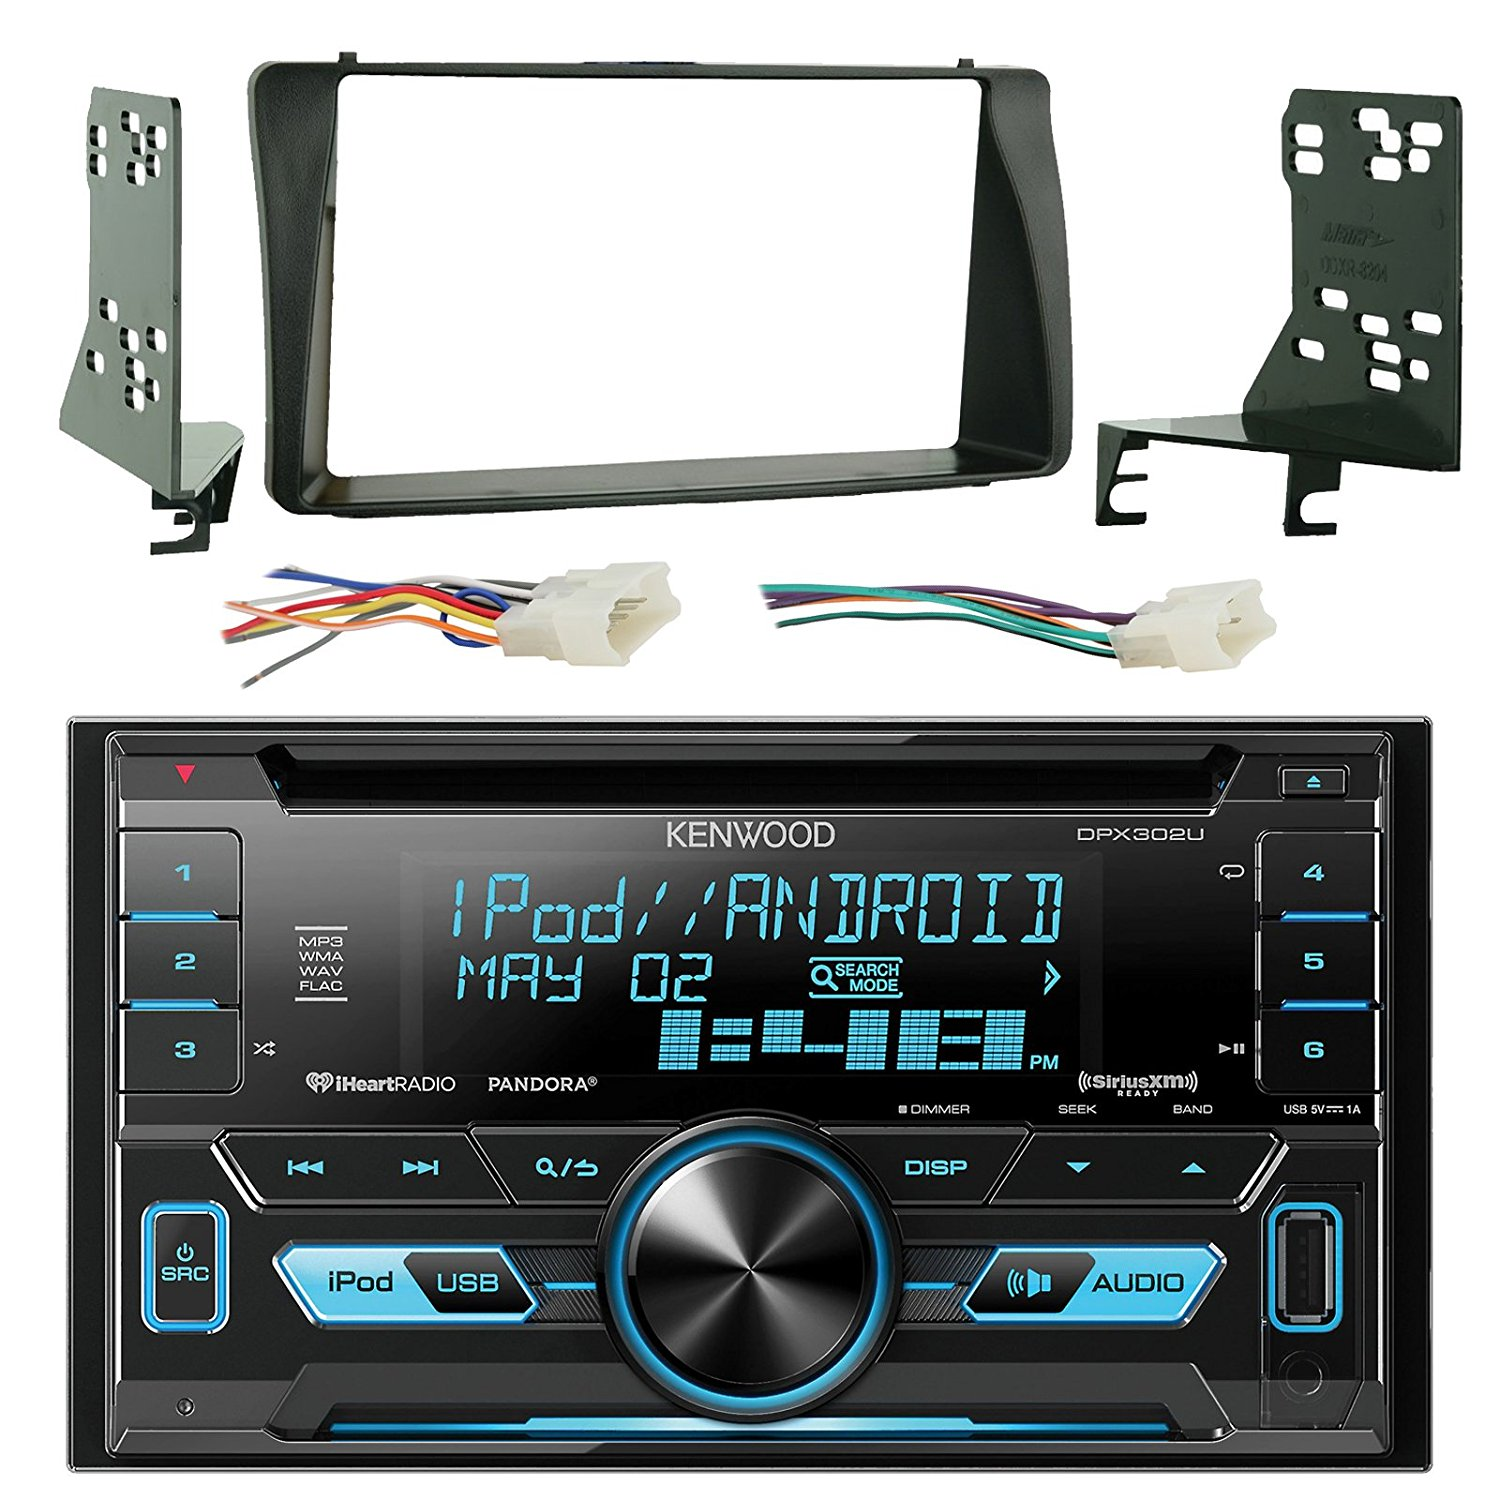 Cheap Kenwood Radio Wiring Diagram Find Usb Mp3 Player Connection Get Quotations Dpx302u Double Din Cd Stereo Receiver Bundle Combo With Metra 2